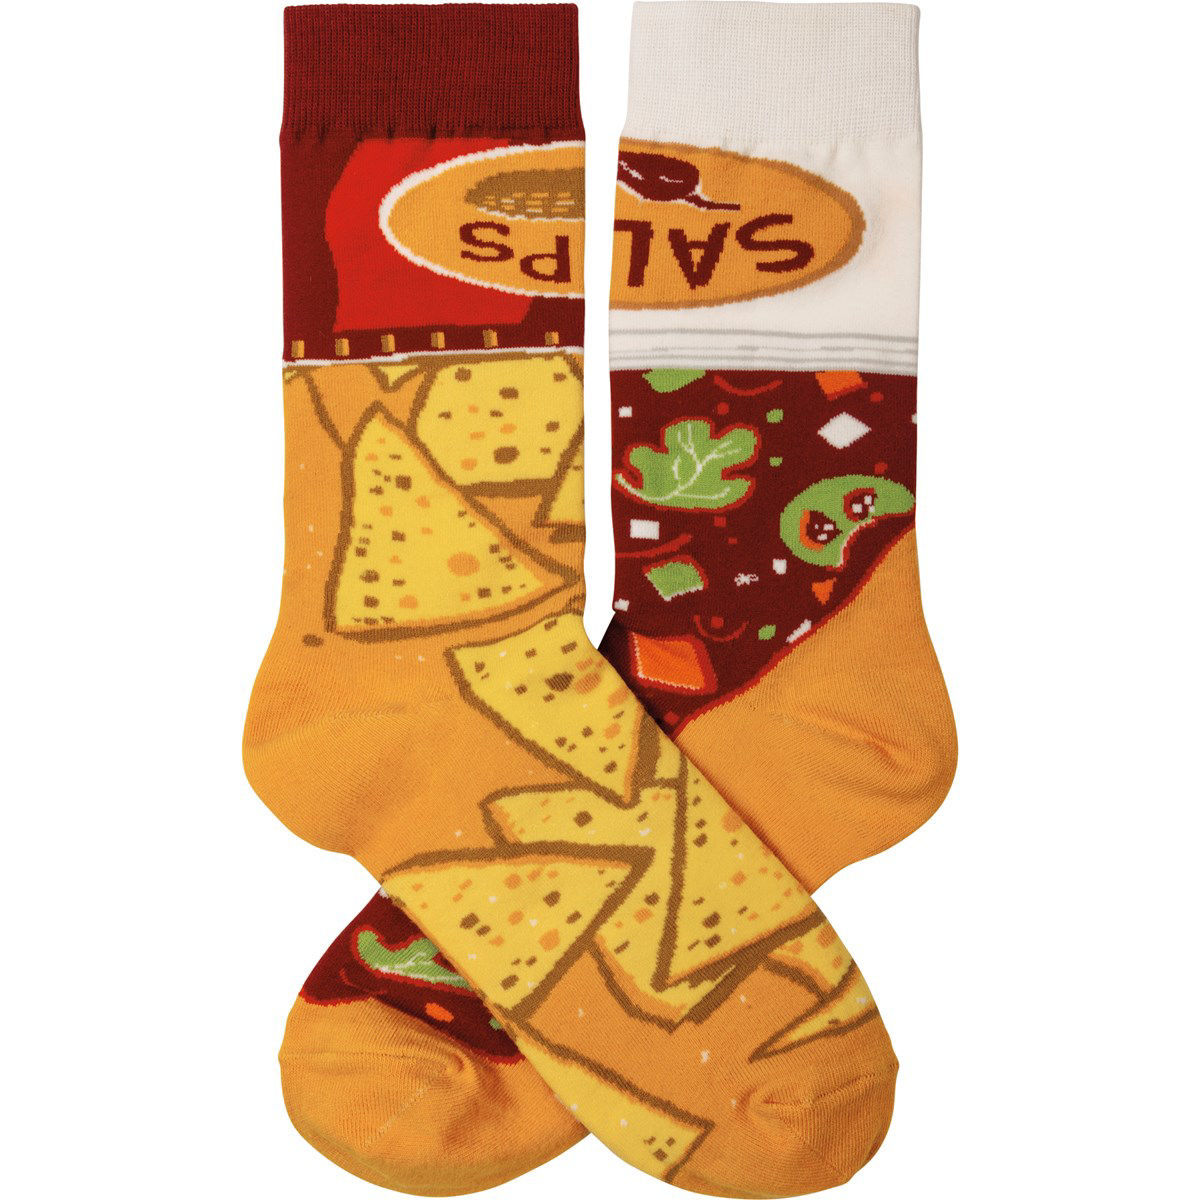 Chips & Salsa Socks by Primitives by Kathy